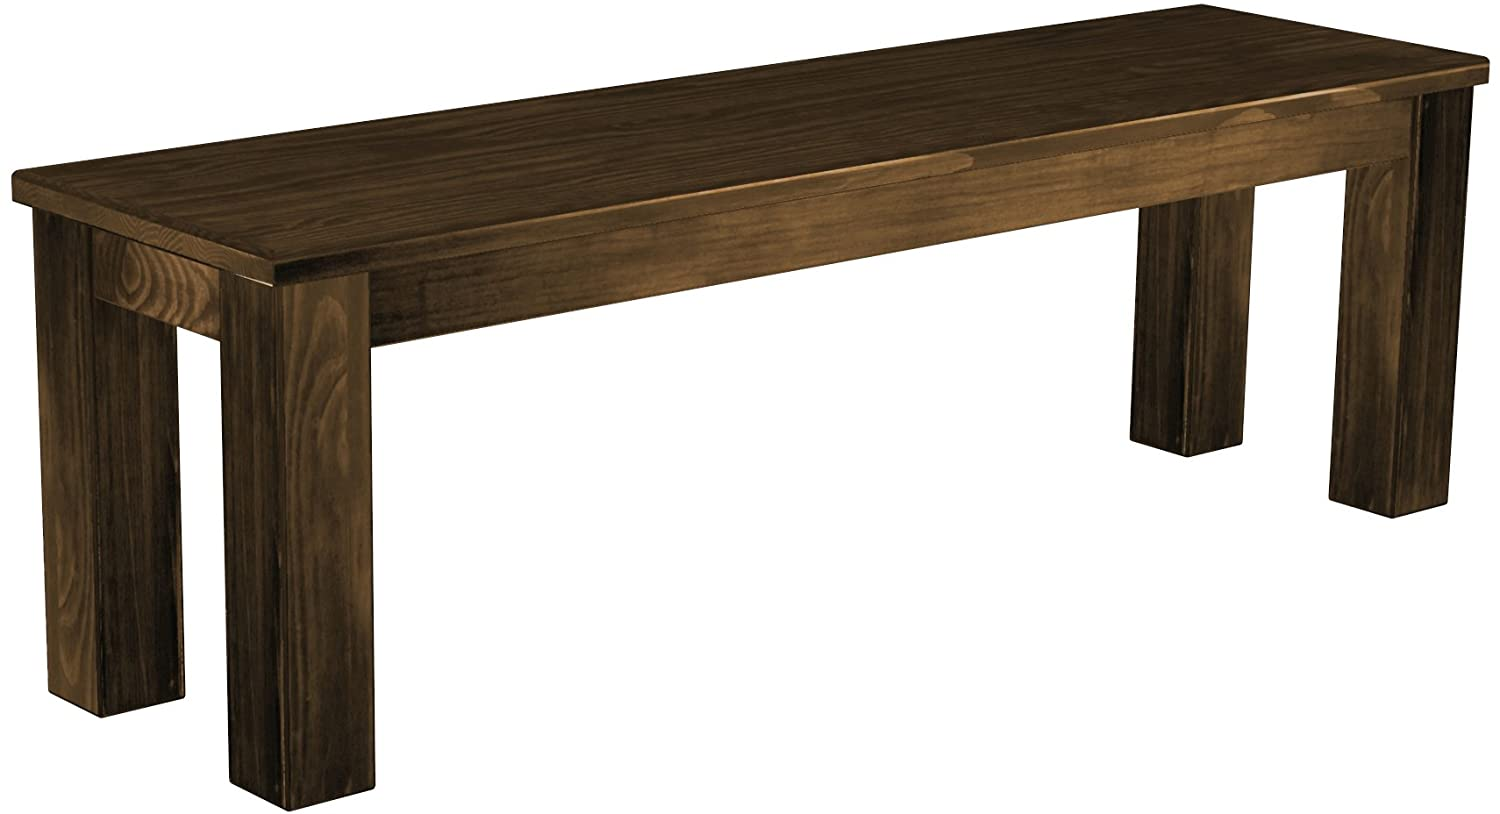 Solid Pine Bench Length 140 cm Waxed - Oiled Dark Brown